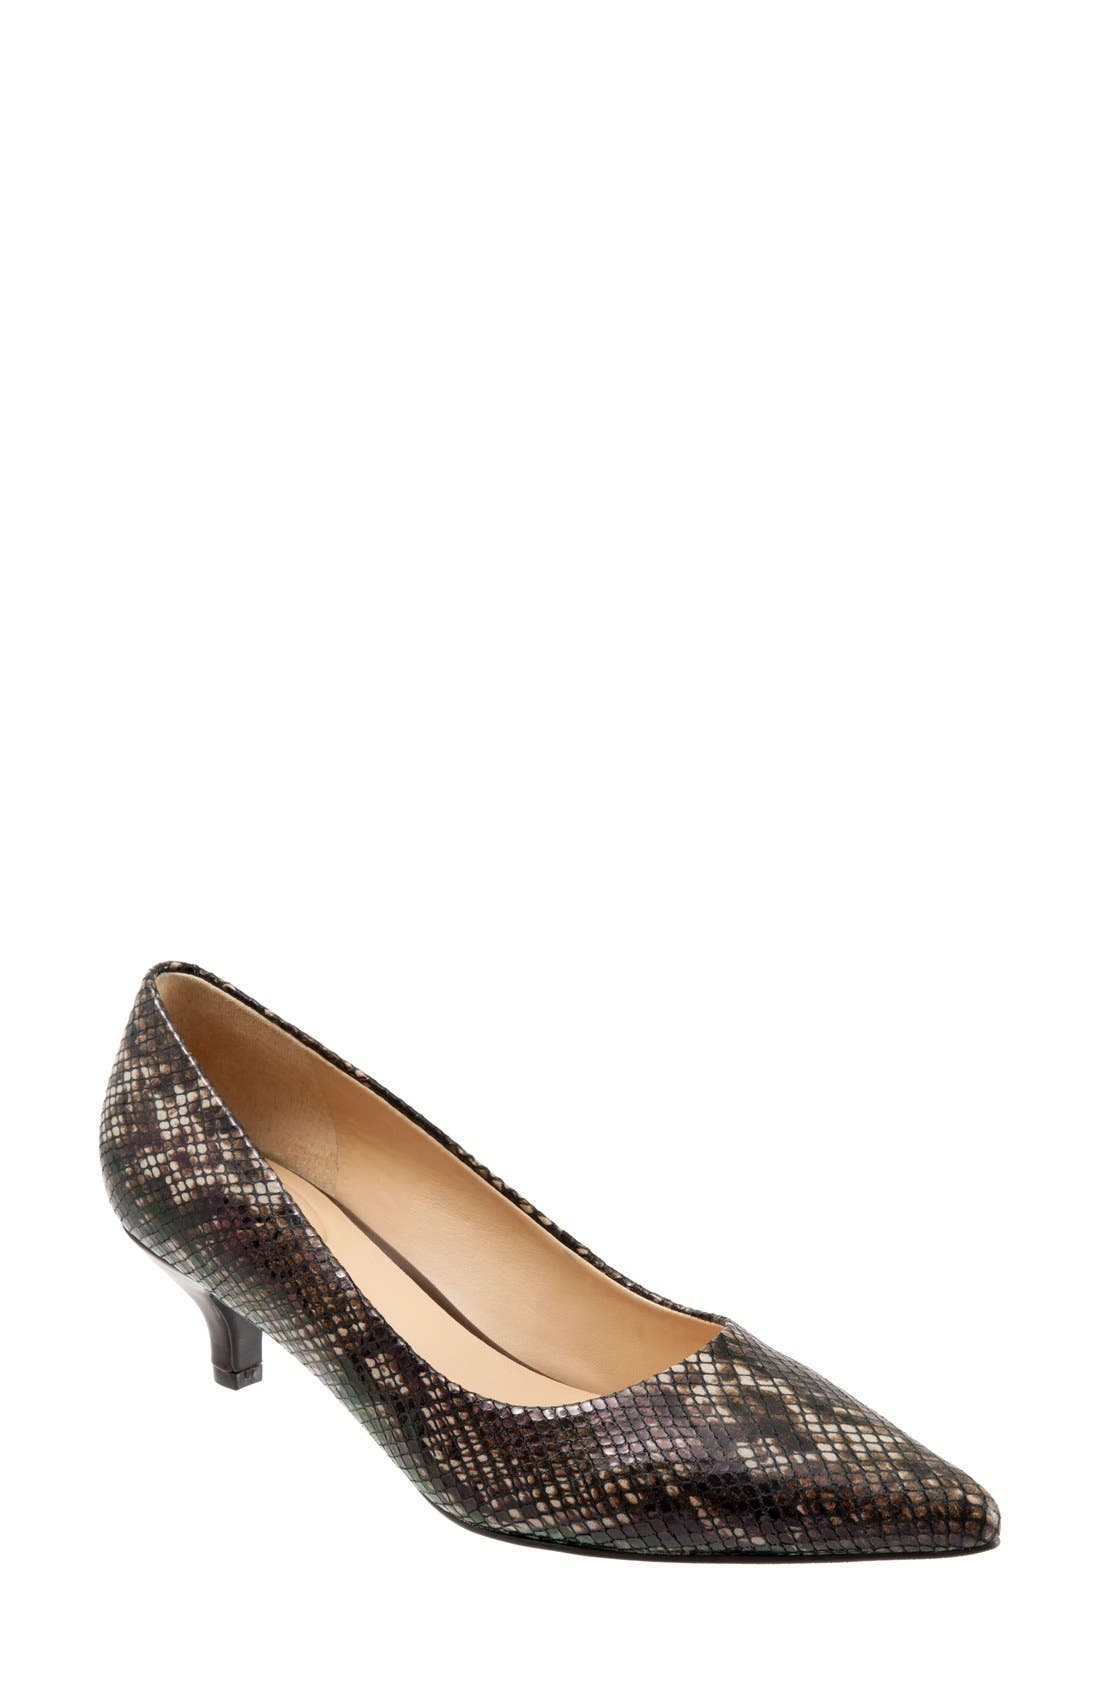 Alternate Image 1 Selected - Trotters 'Paulina' Leather Pump